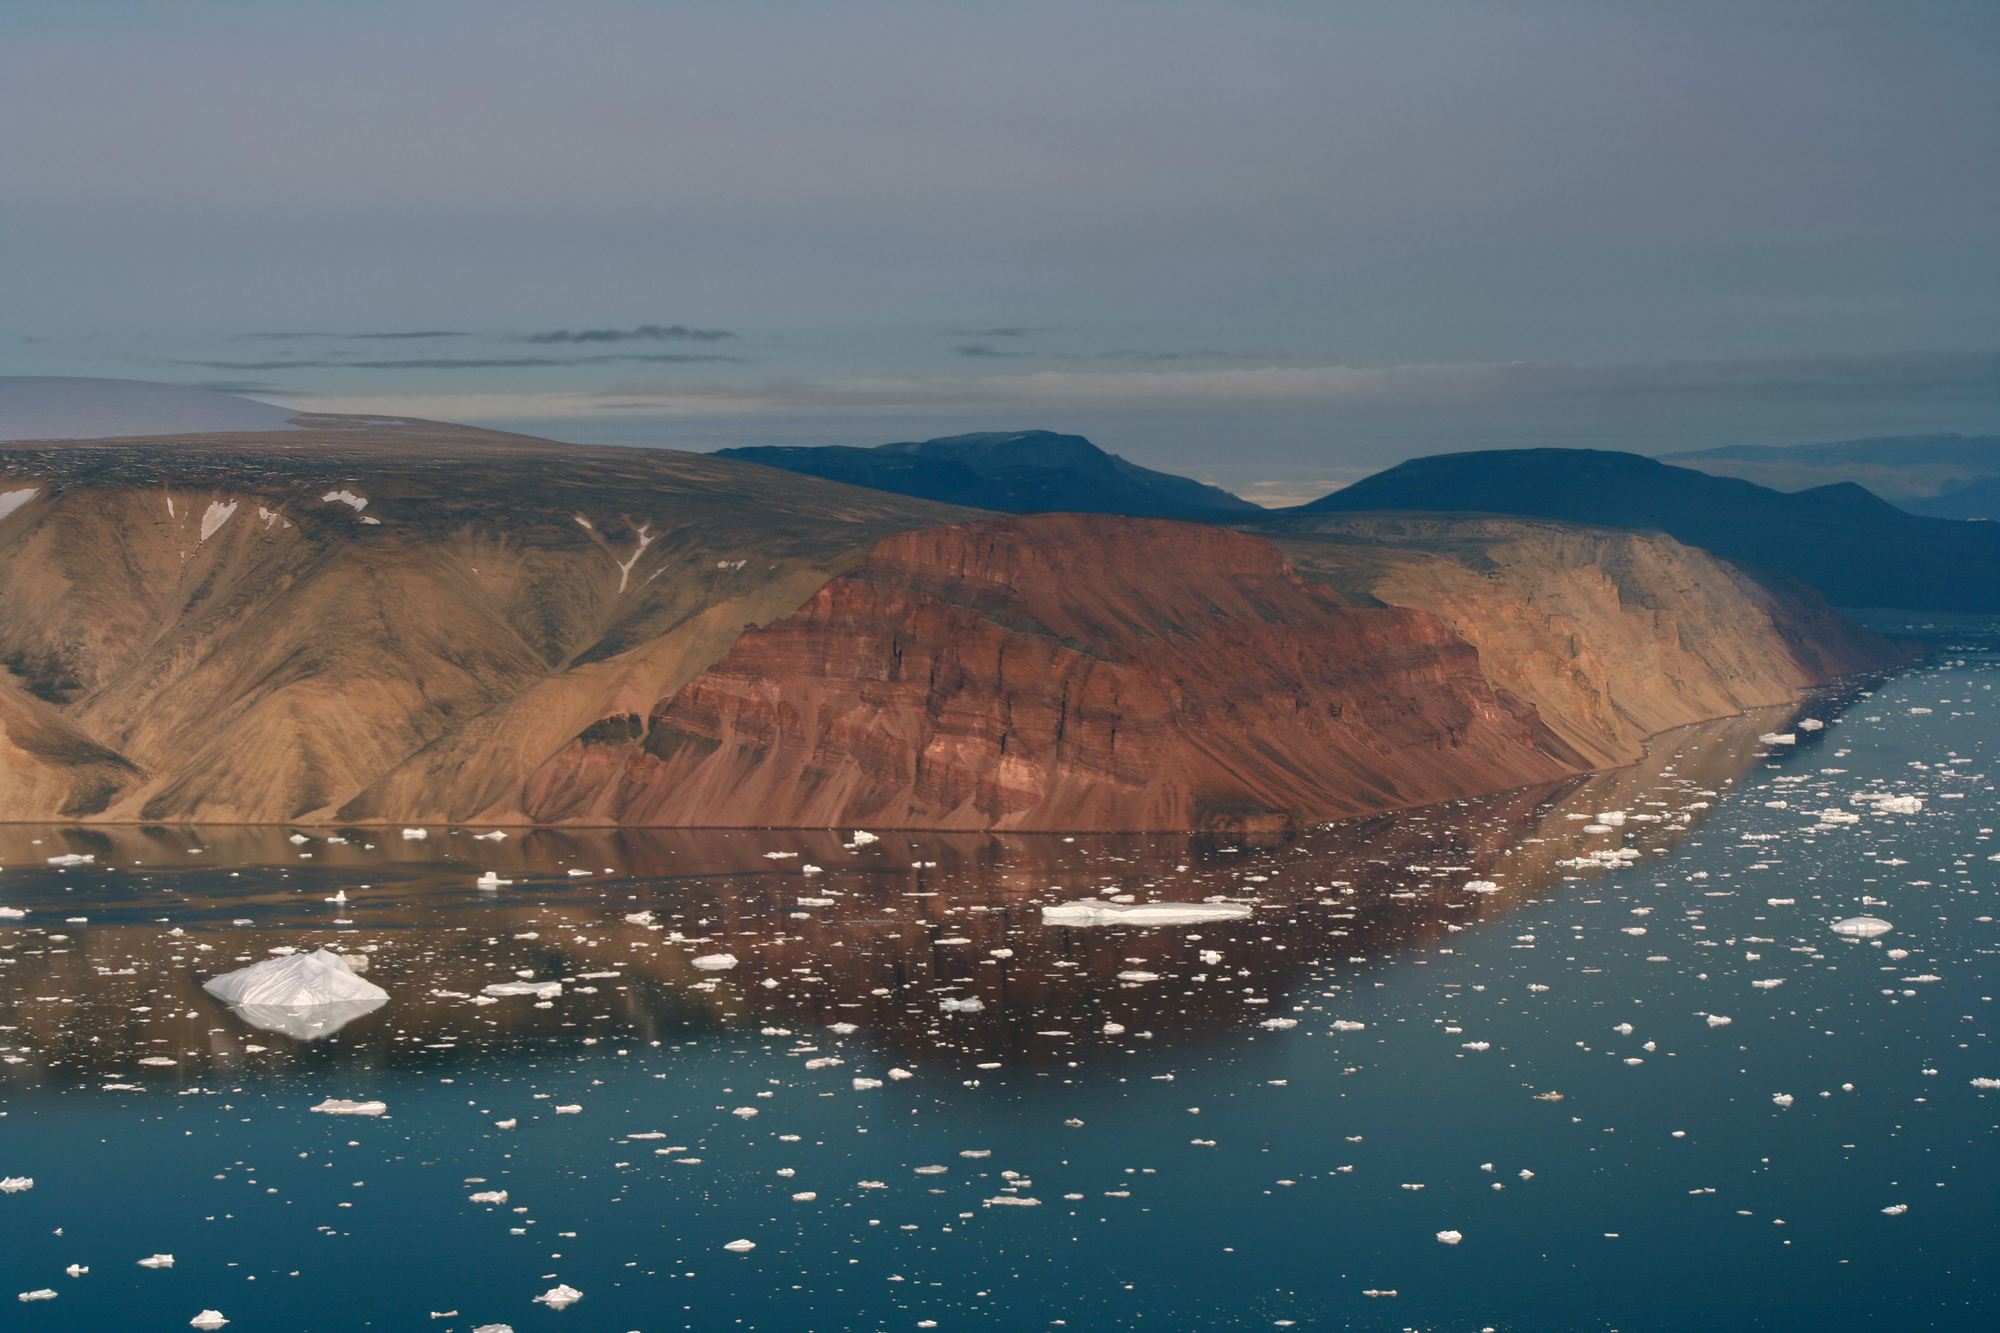 Red Cliffs and icebergs in Greenland